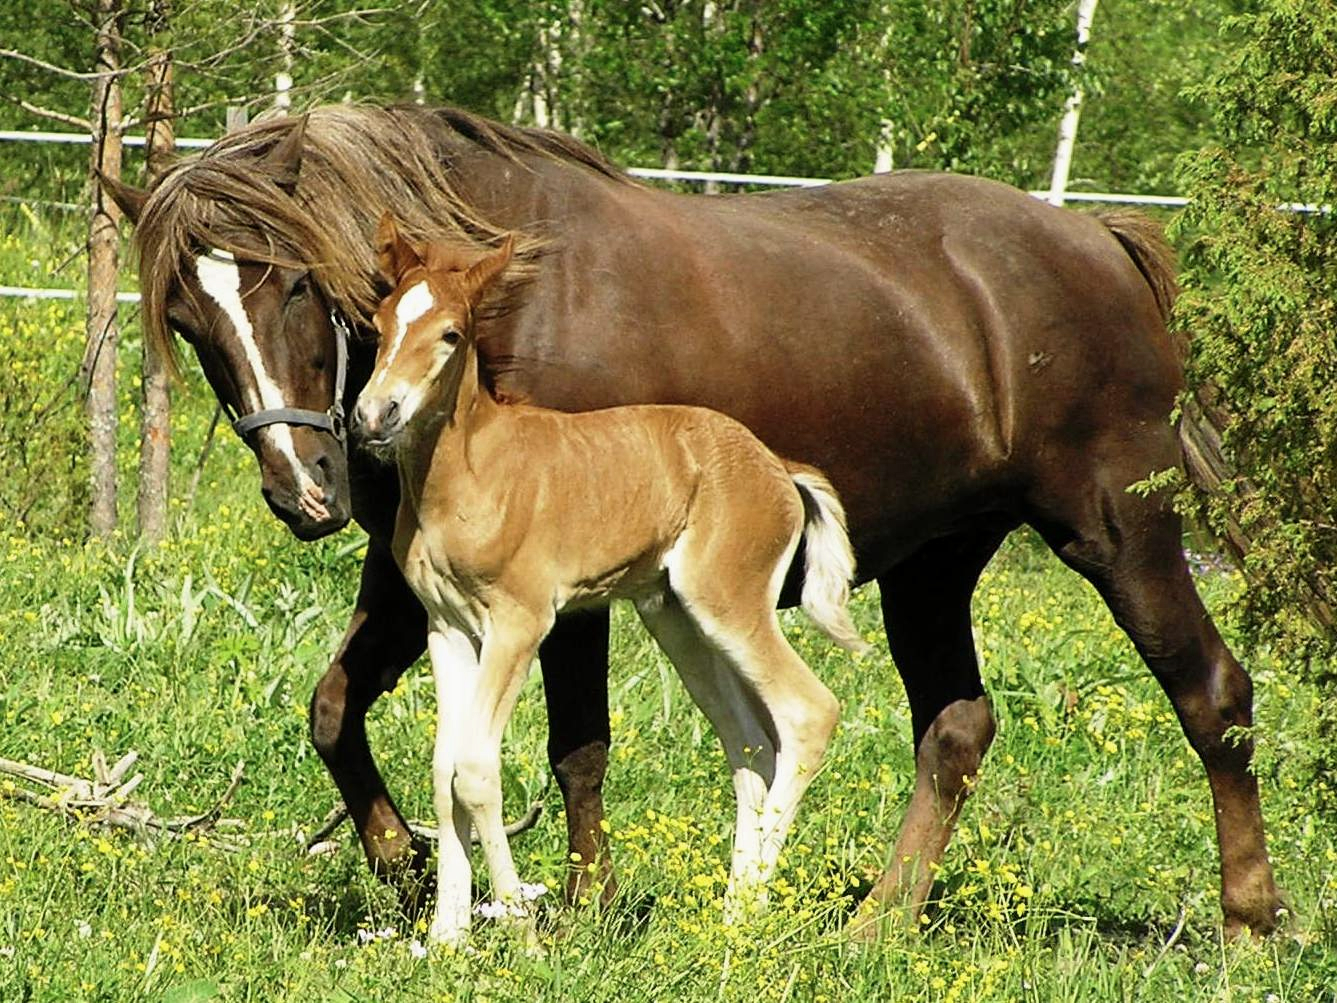 File:Finnhorse mare with foal.jpg - Wikimedia Commons